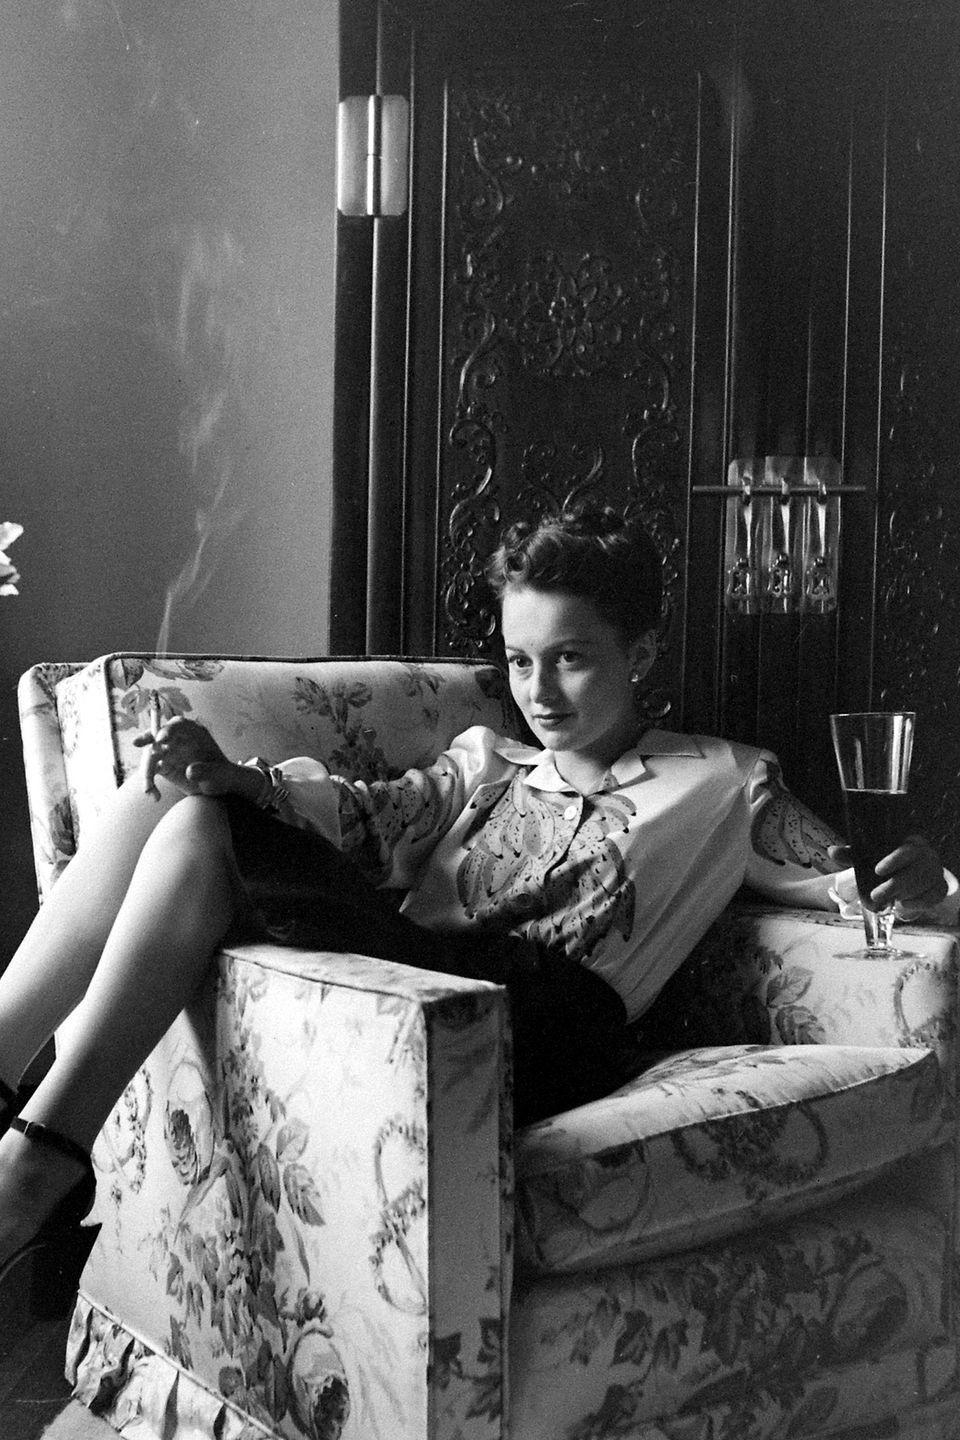 <p>Cigarette lit and a drink in hand, the actress lounges on a sofa in her home. </p>